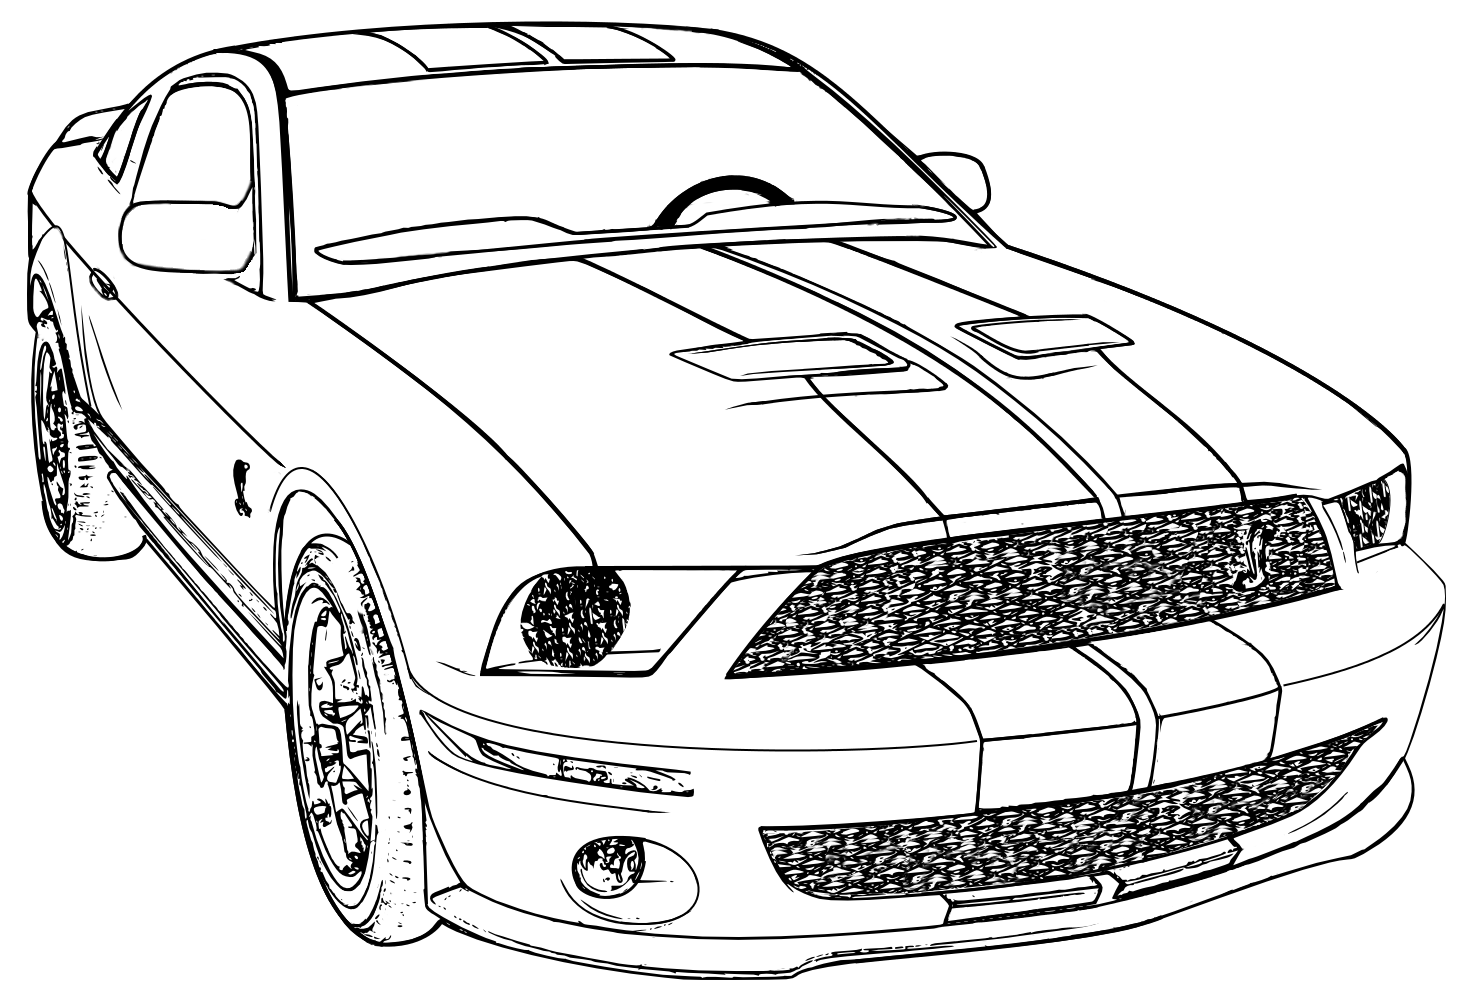 printable mustang car | car coloring page , ford mustang | school ...